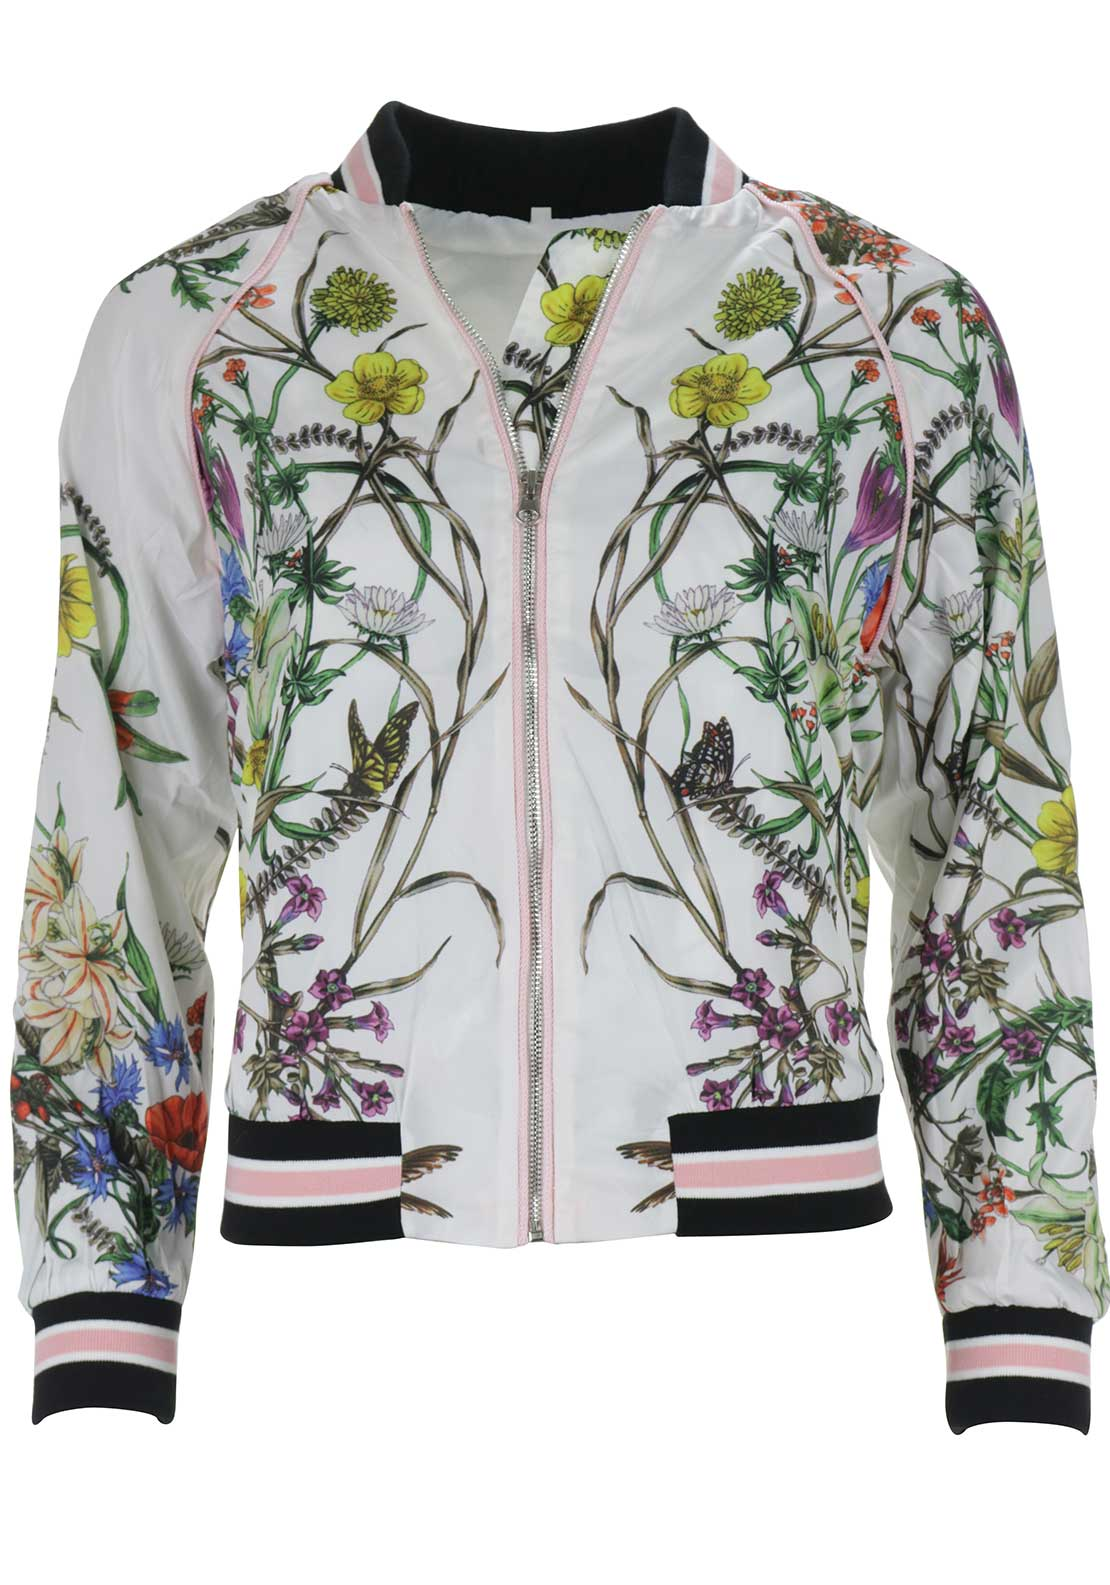 Boutique Floral Bomber Jacket, White